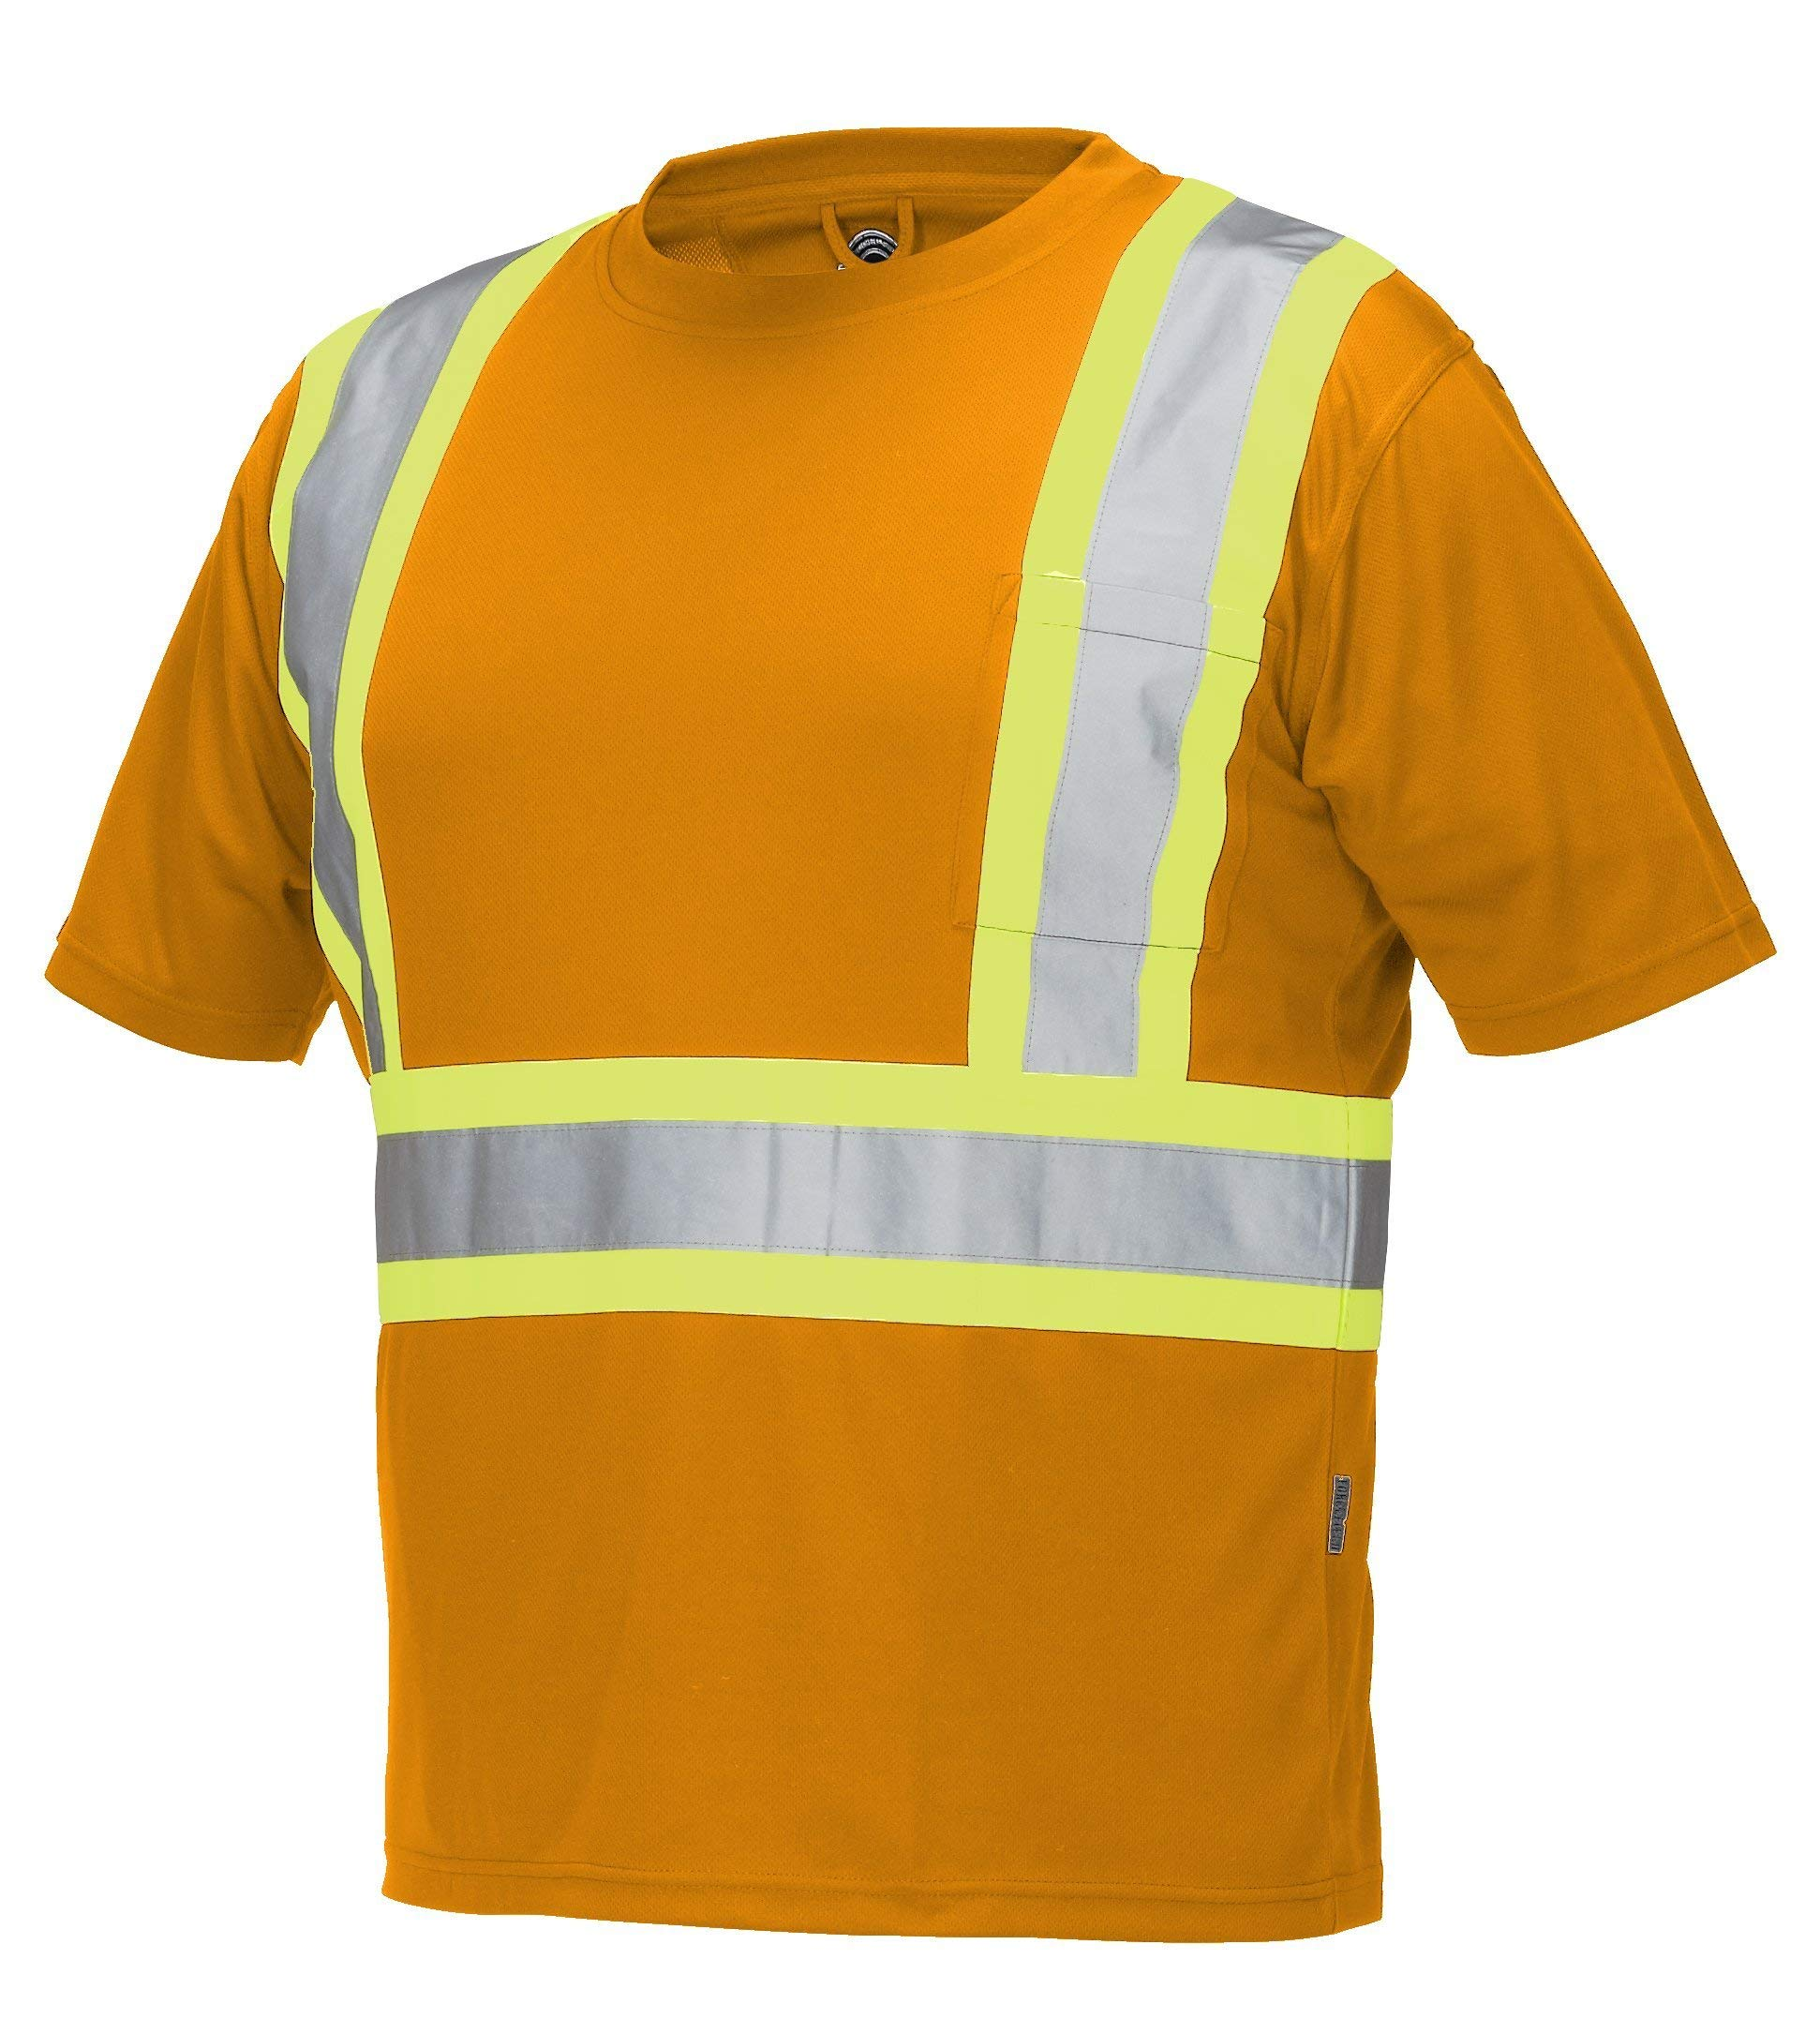 ForceField Hi Vis Crew Neck Short Sleeve Safety Tee Shirt Chest Pocket